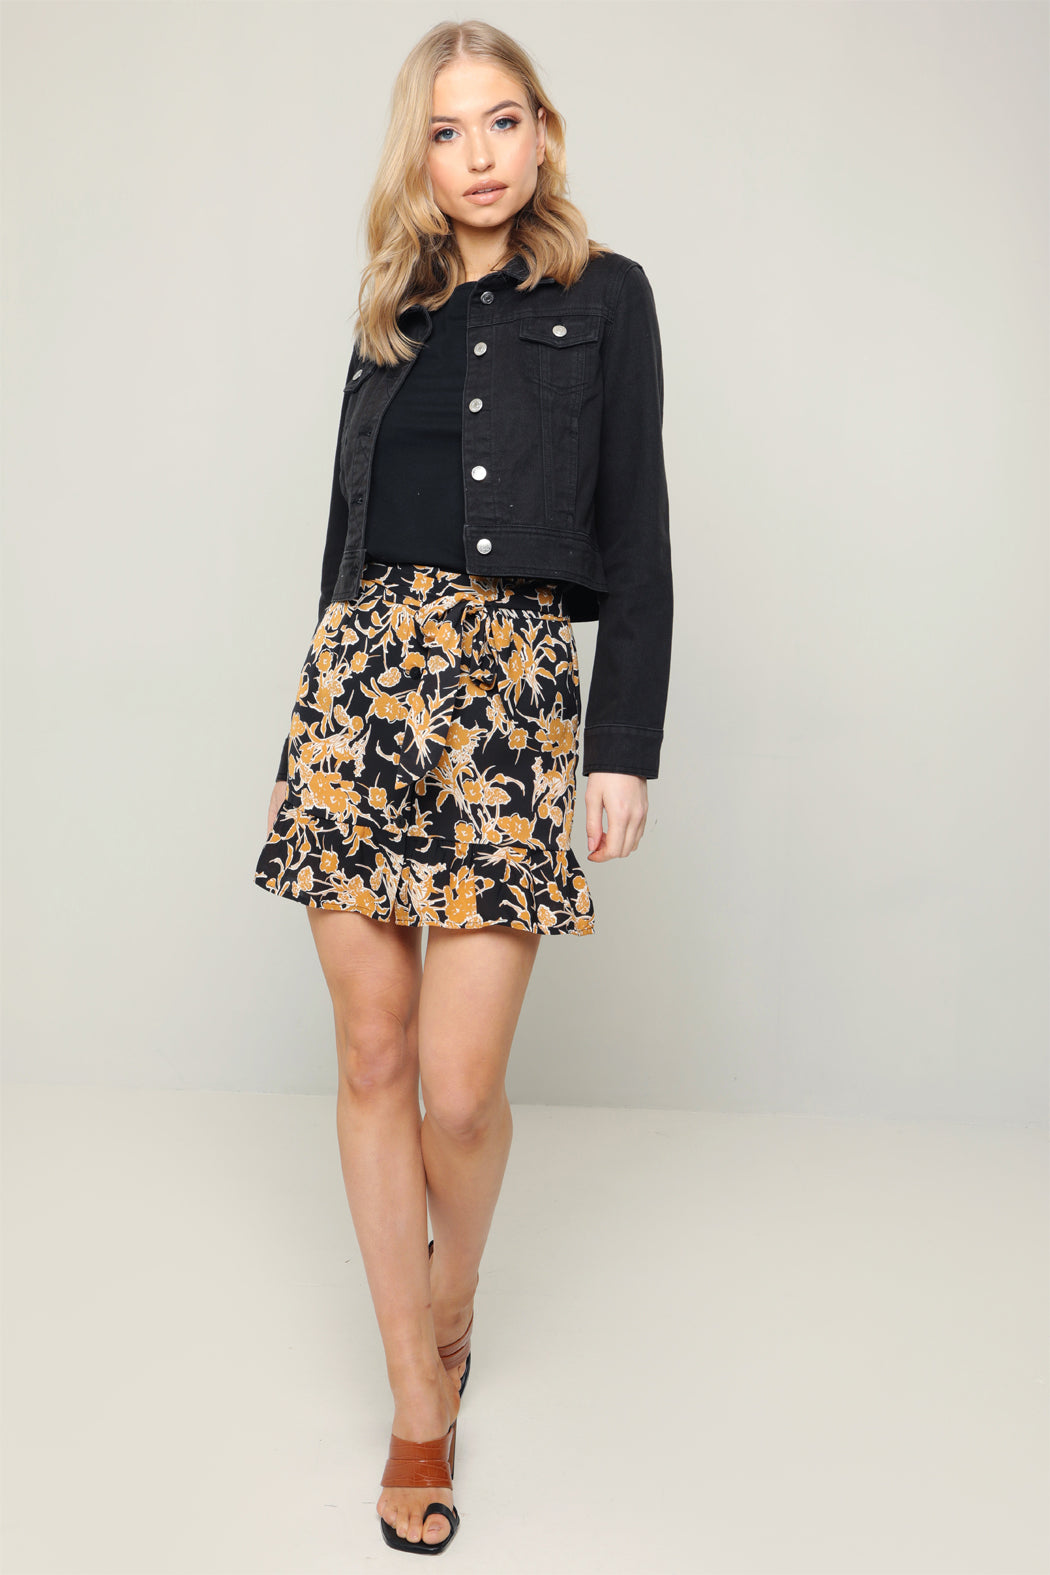 Siren Black and Mustard Floral Tie Front Peplum Mini Skirt